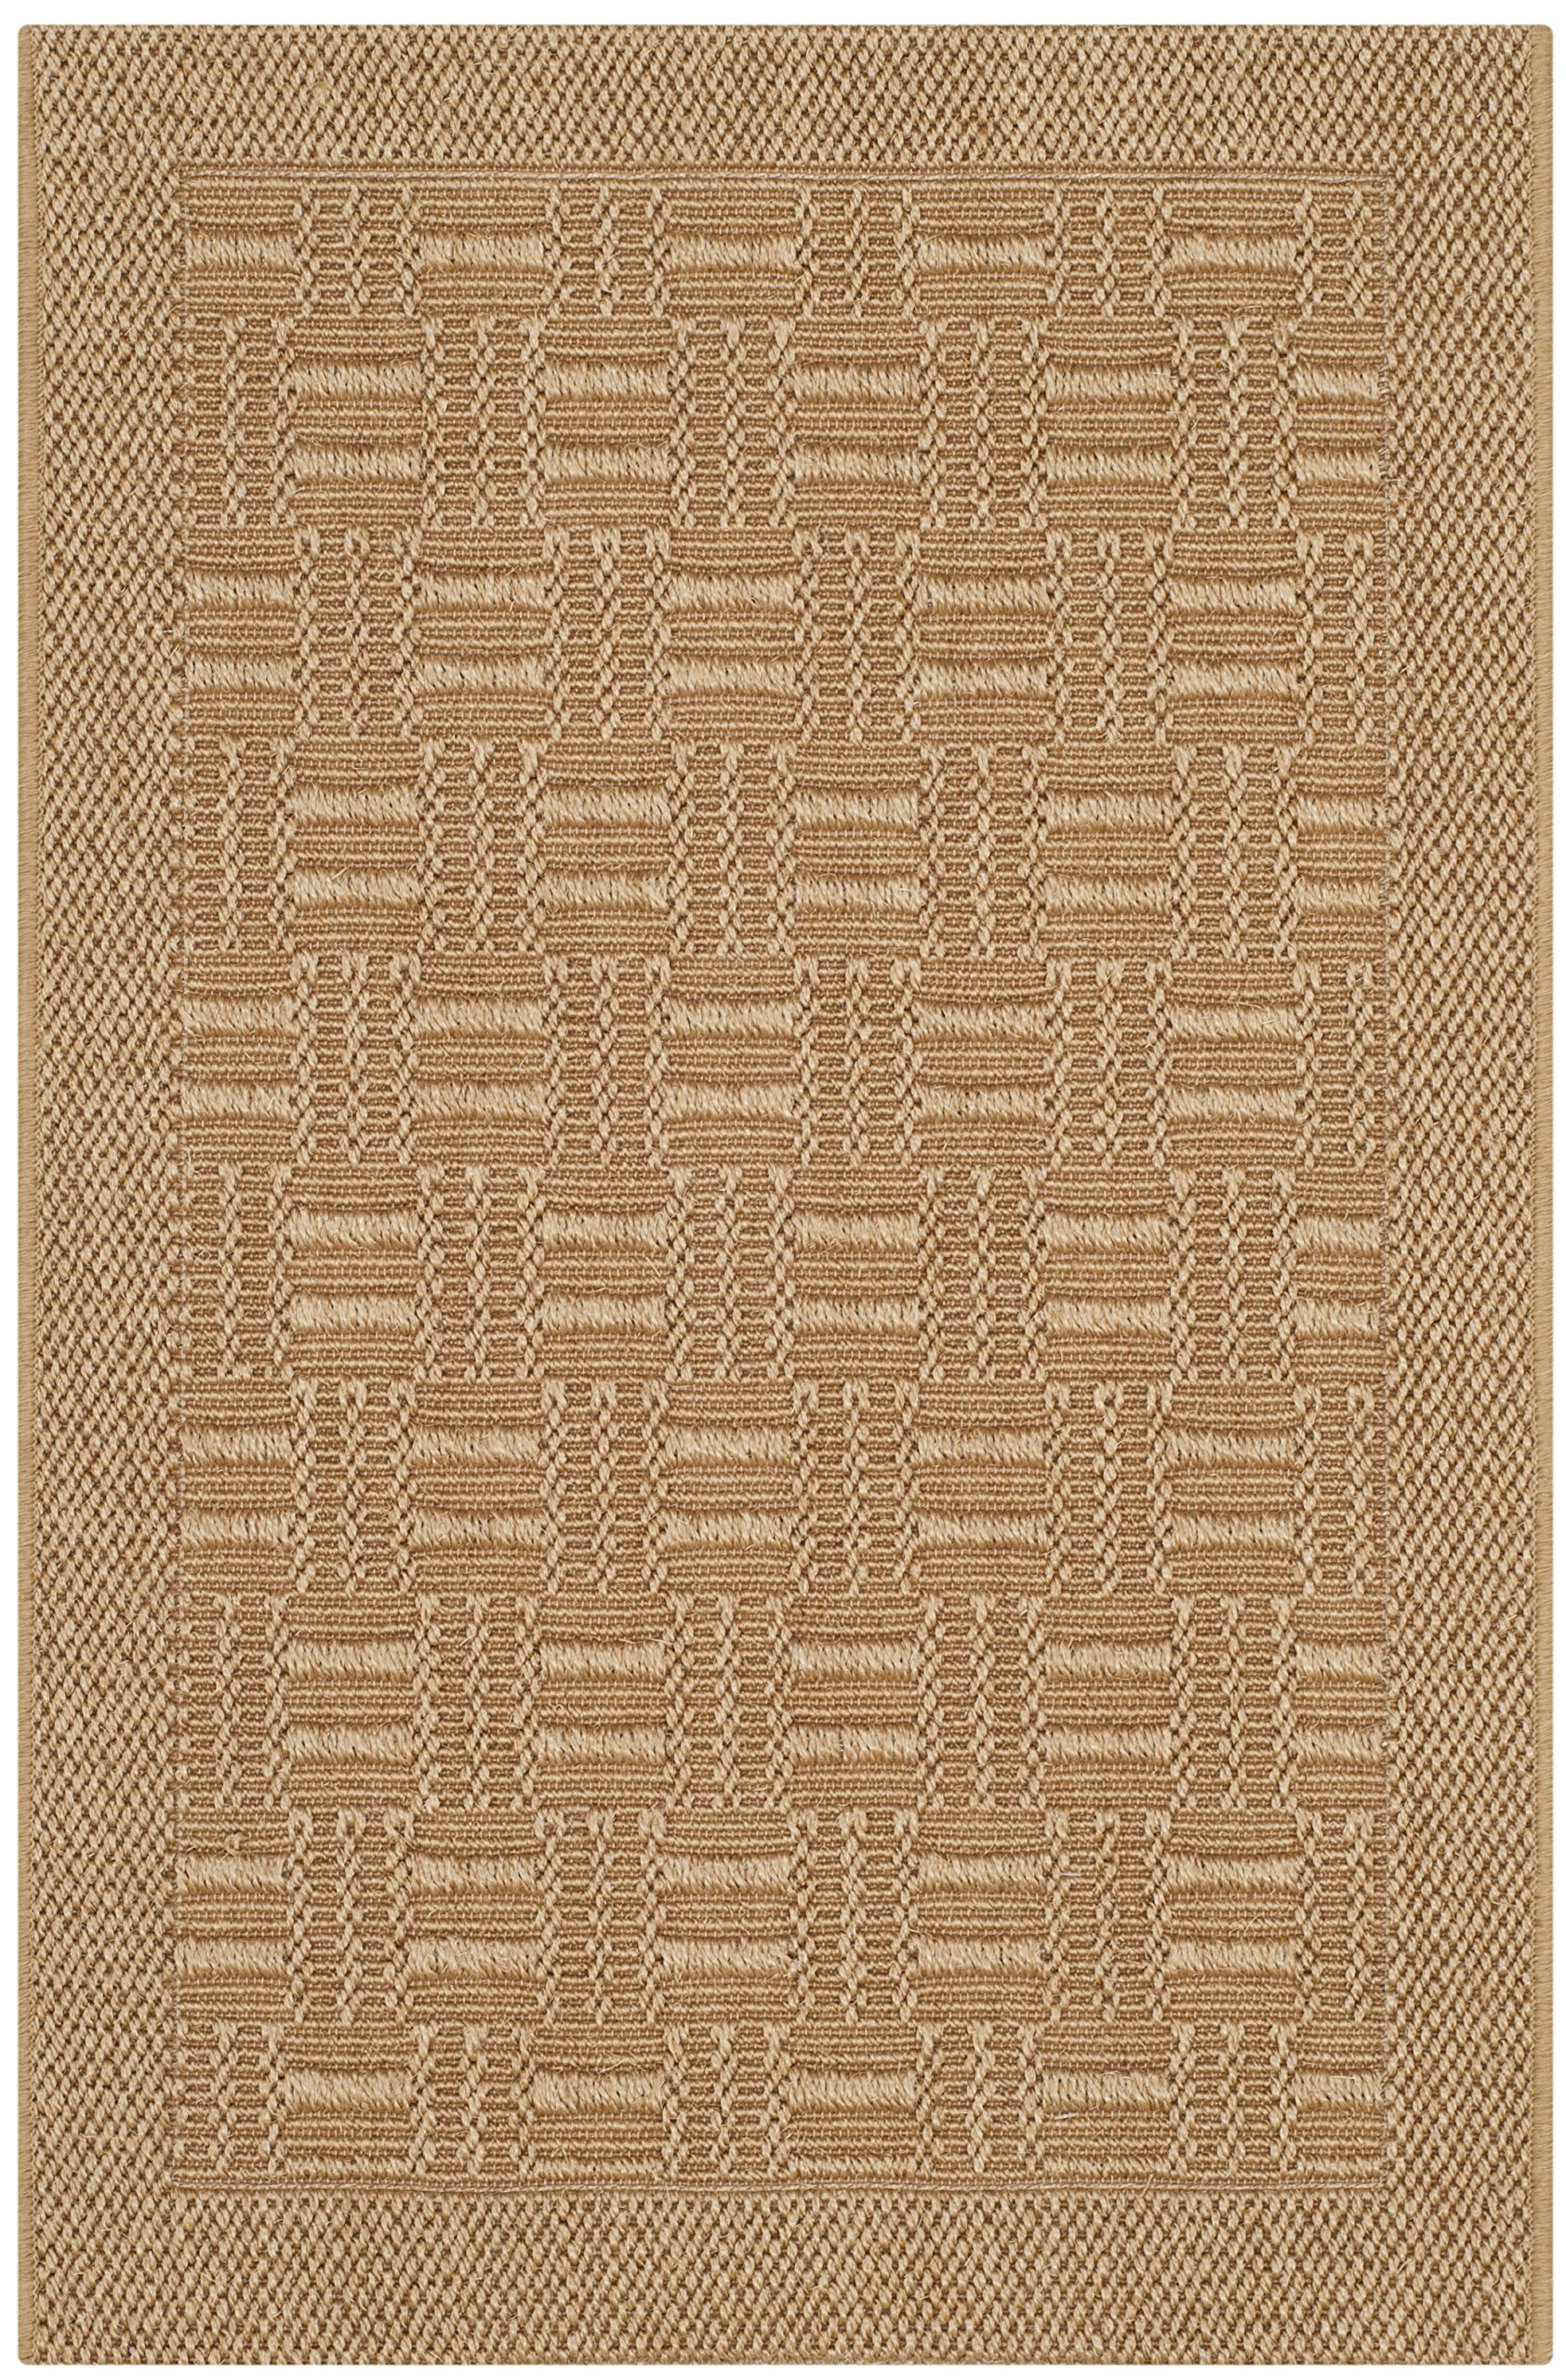 Safavieh Palm Beach Collection PAB359M Maize Sisal & Jute Area Rug (2' x 3')